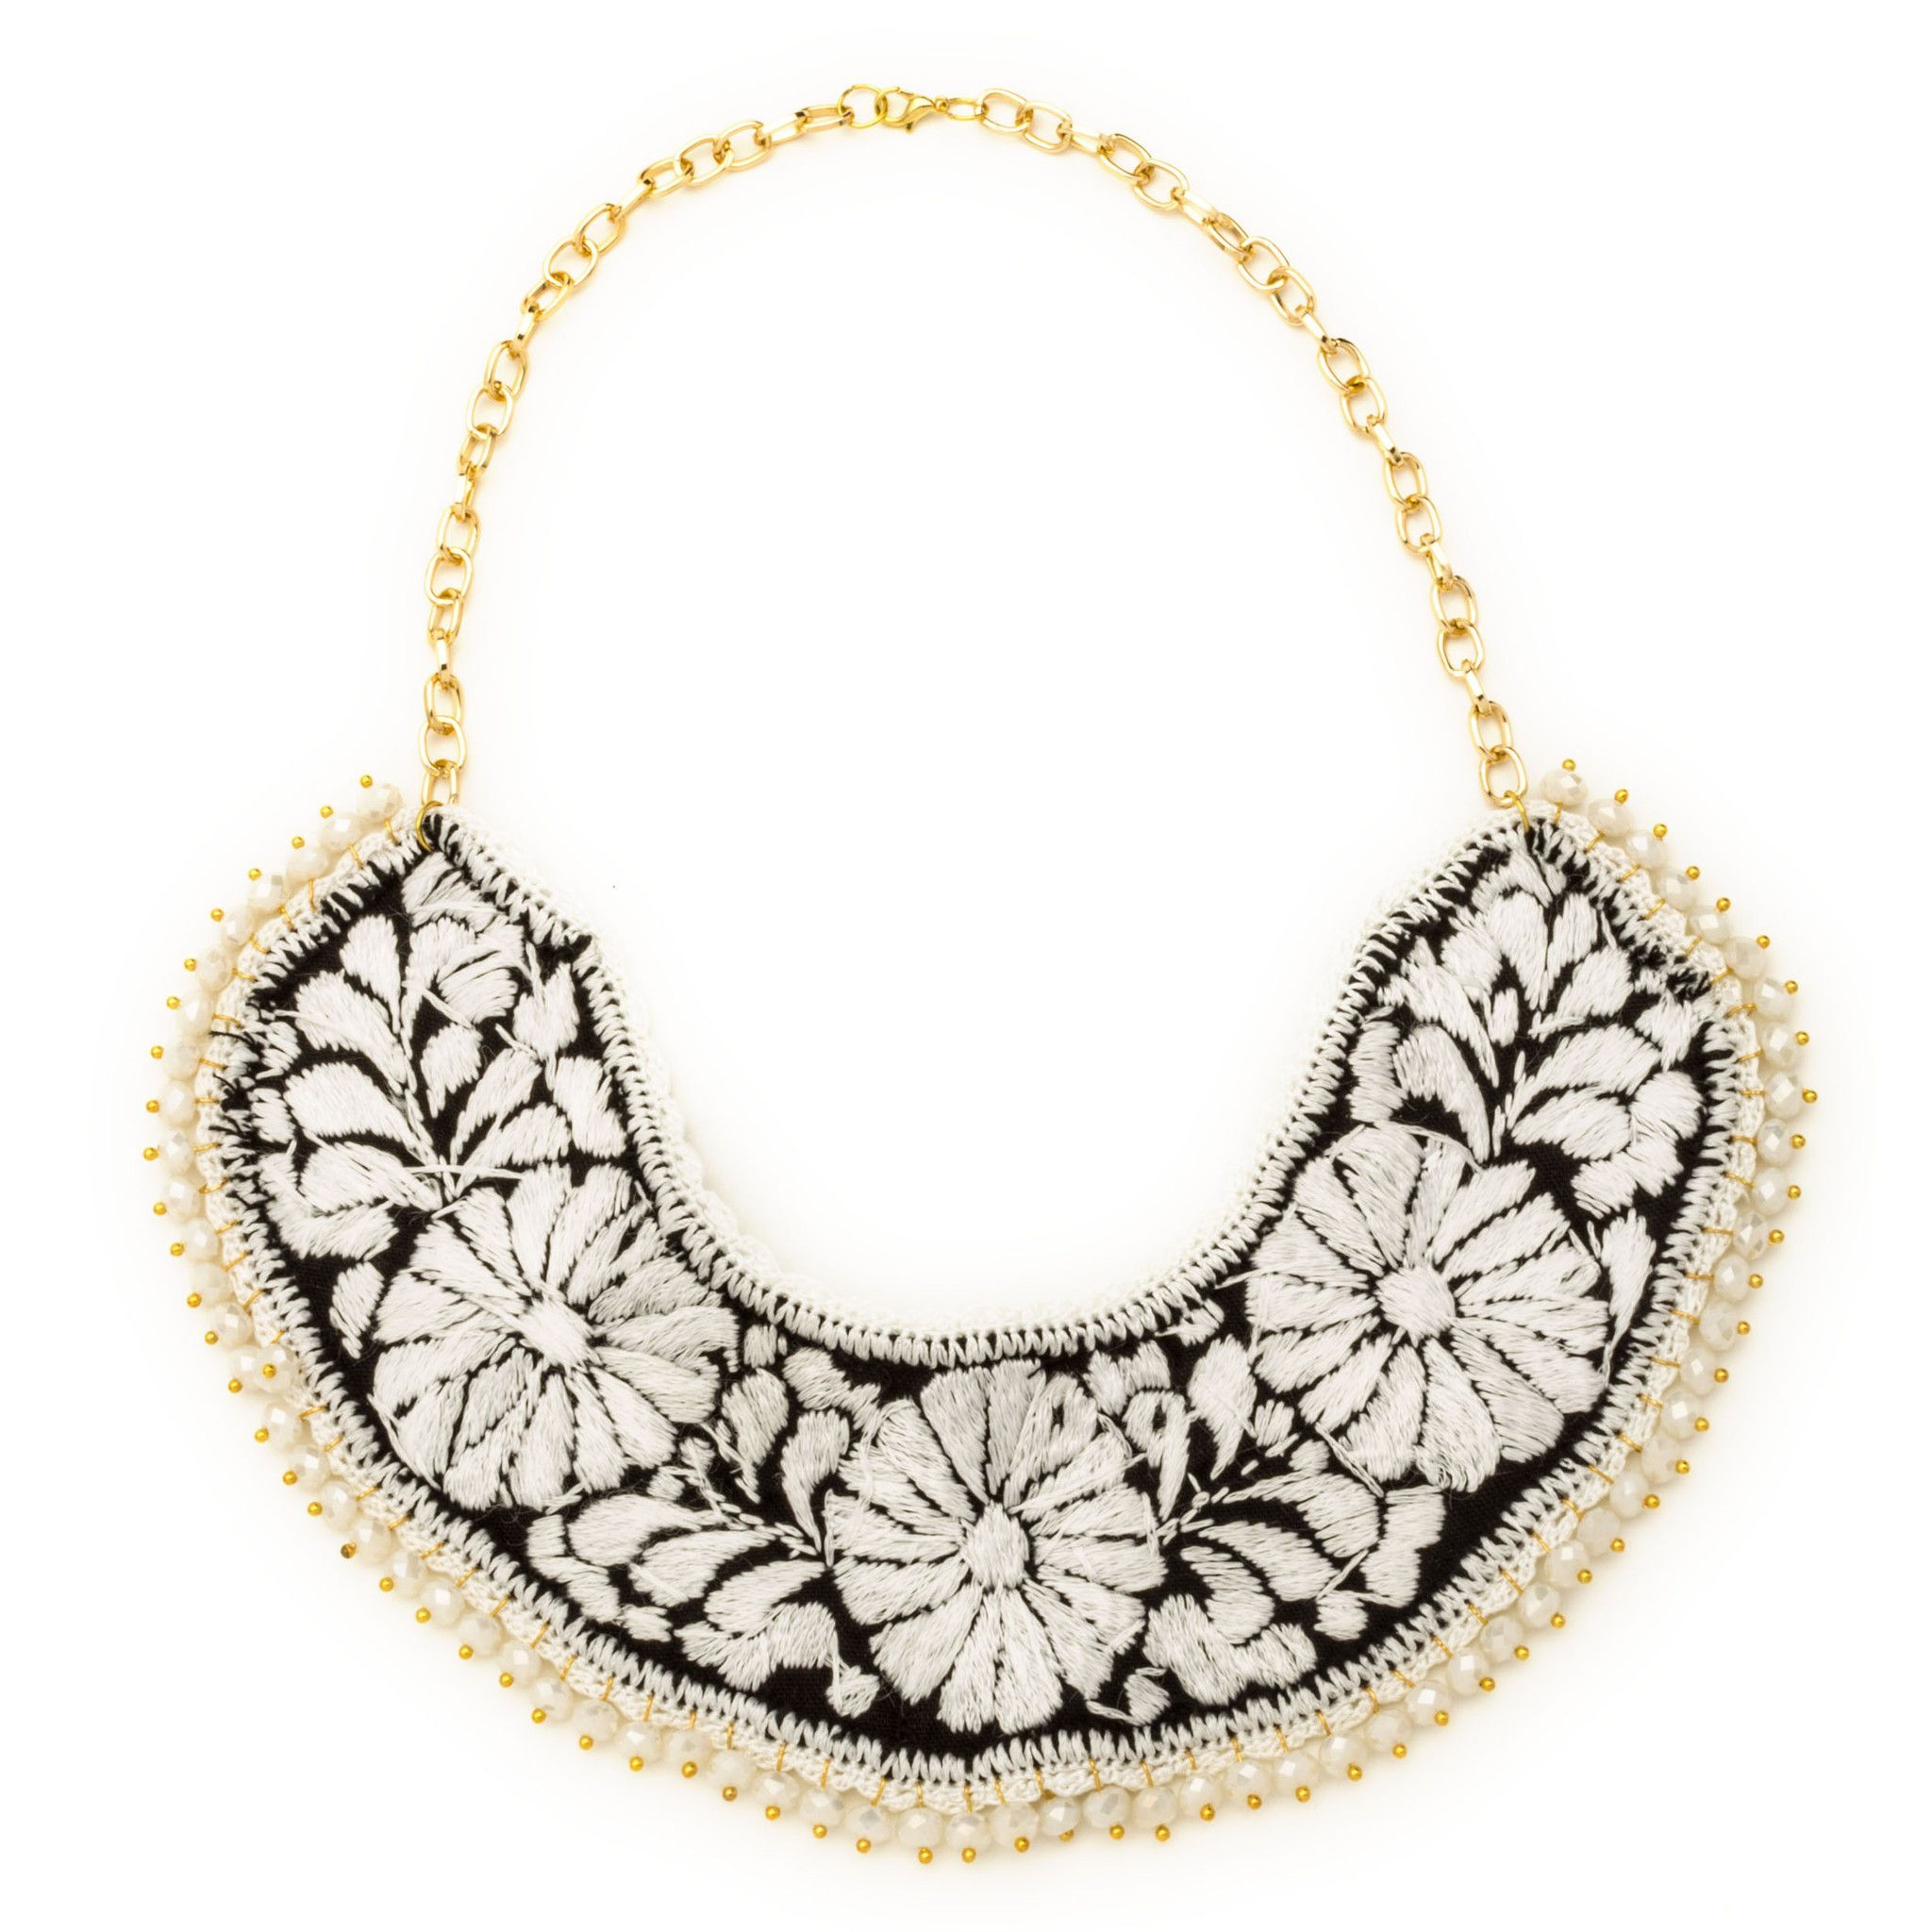 Embroidered bib necklace with beads necklaces